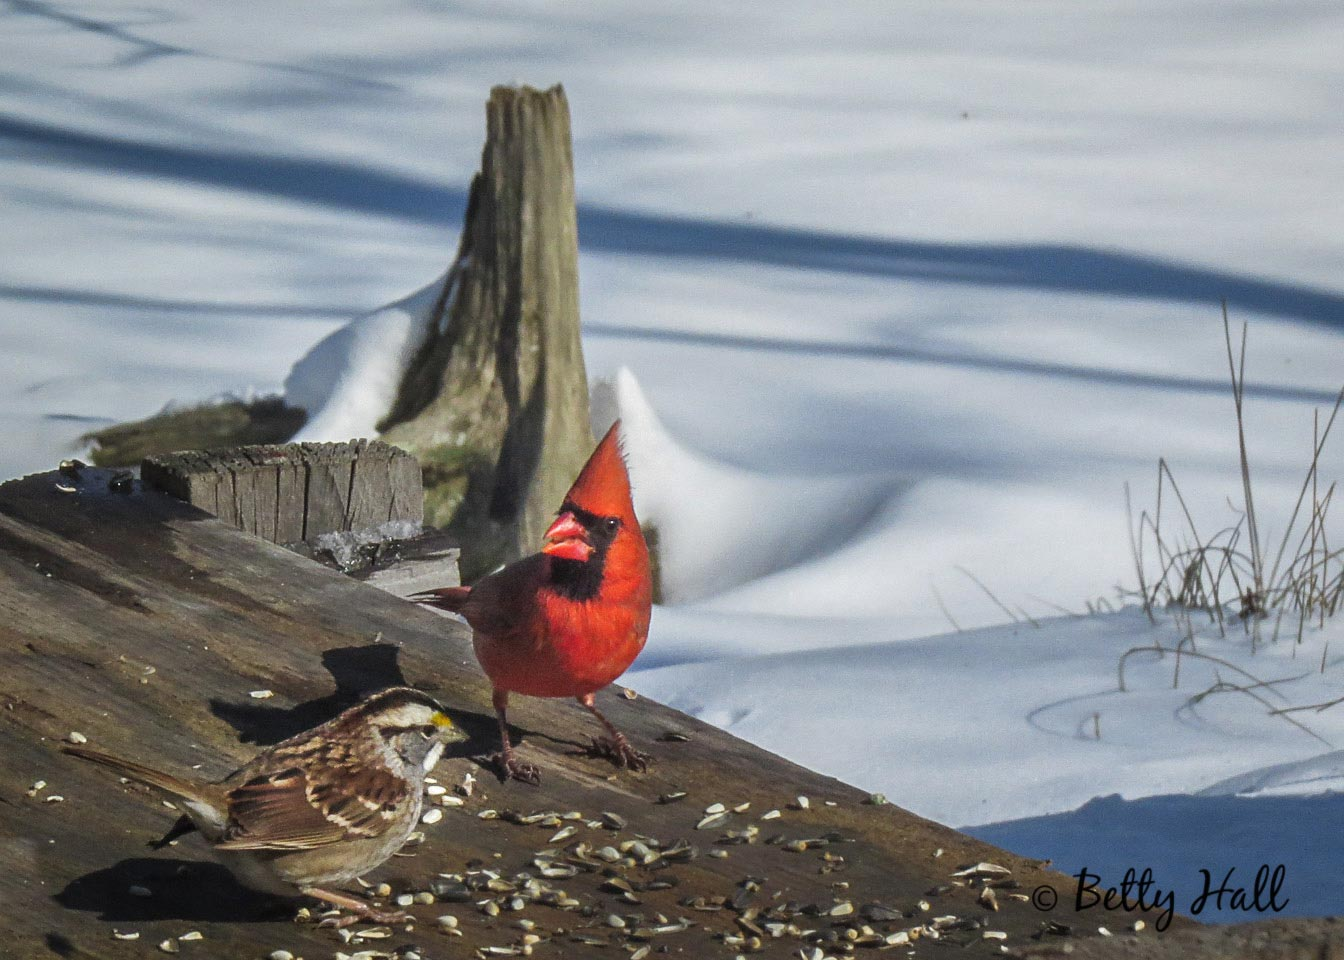 Male cardinal and whitet-hroated sparrow